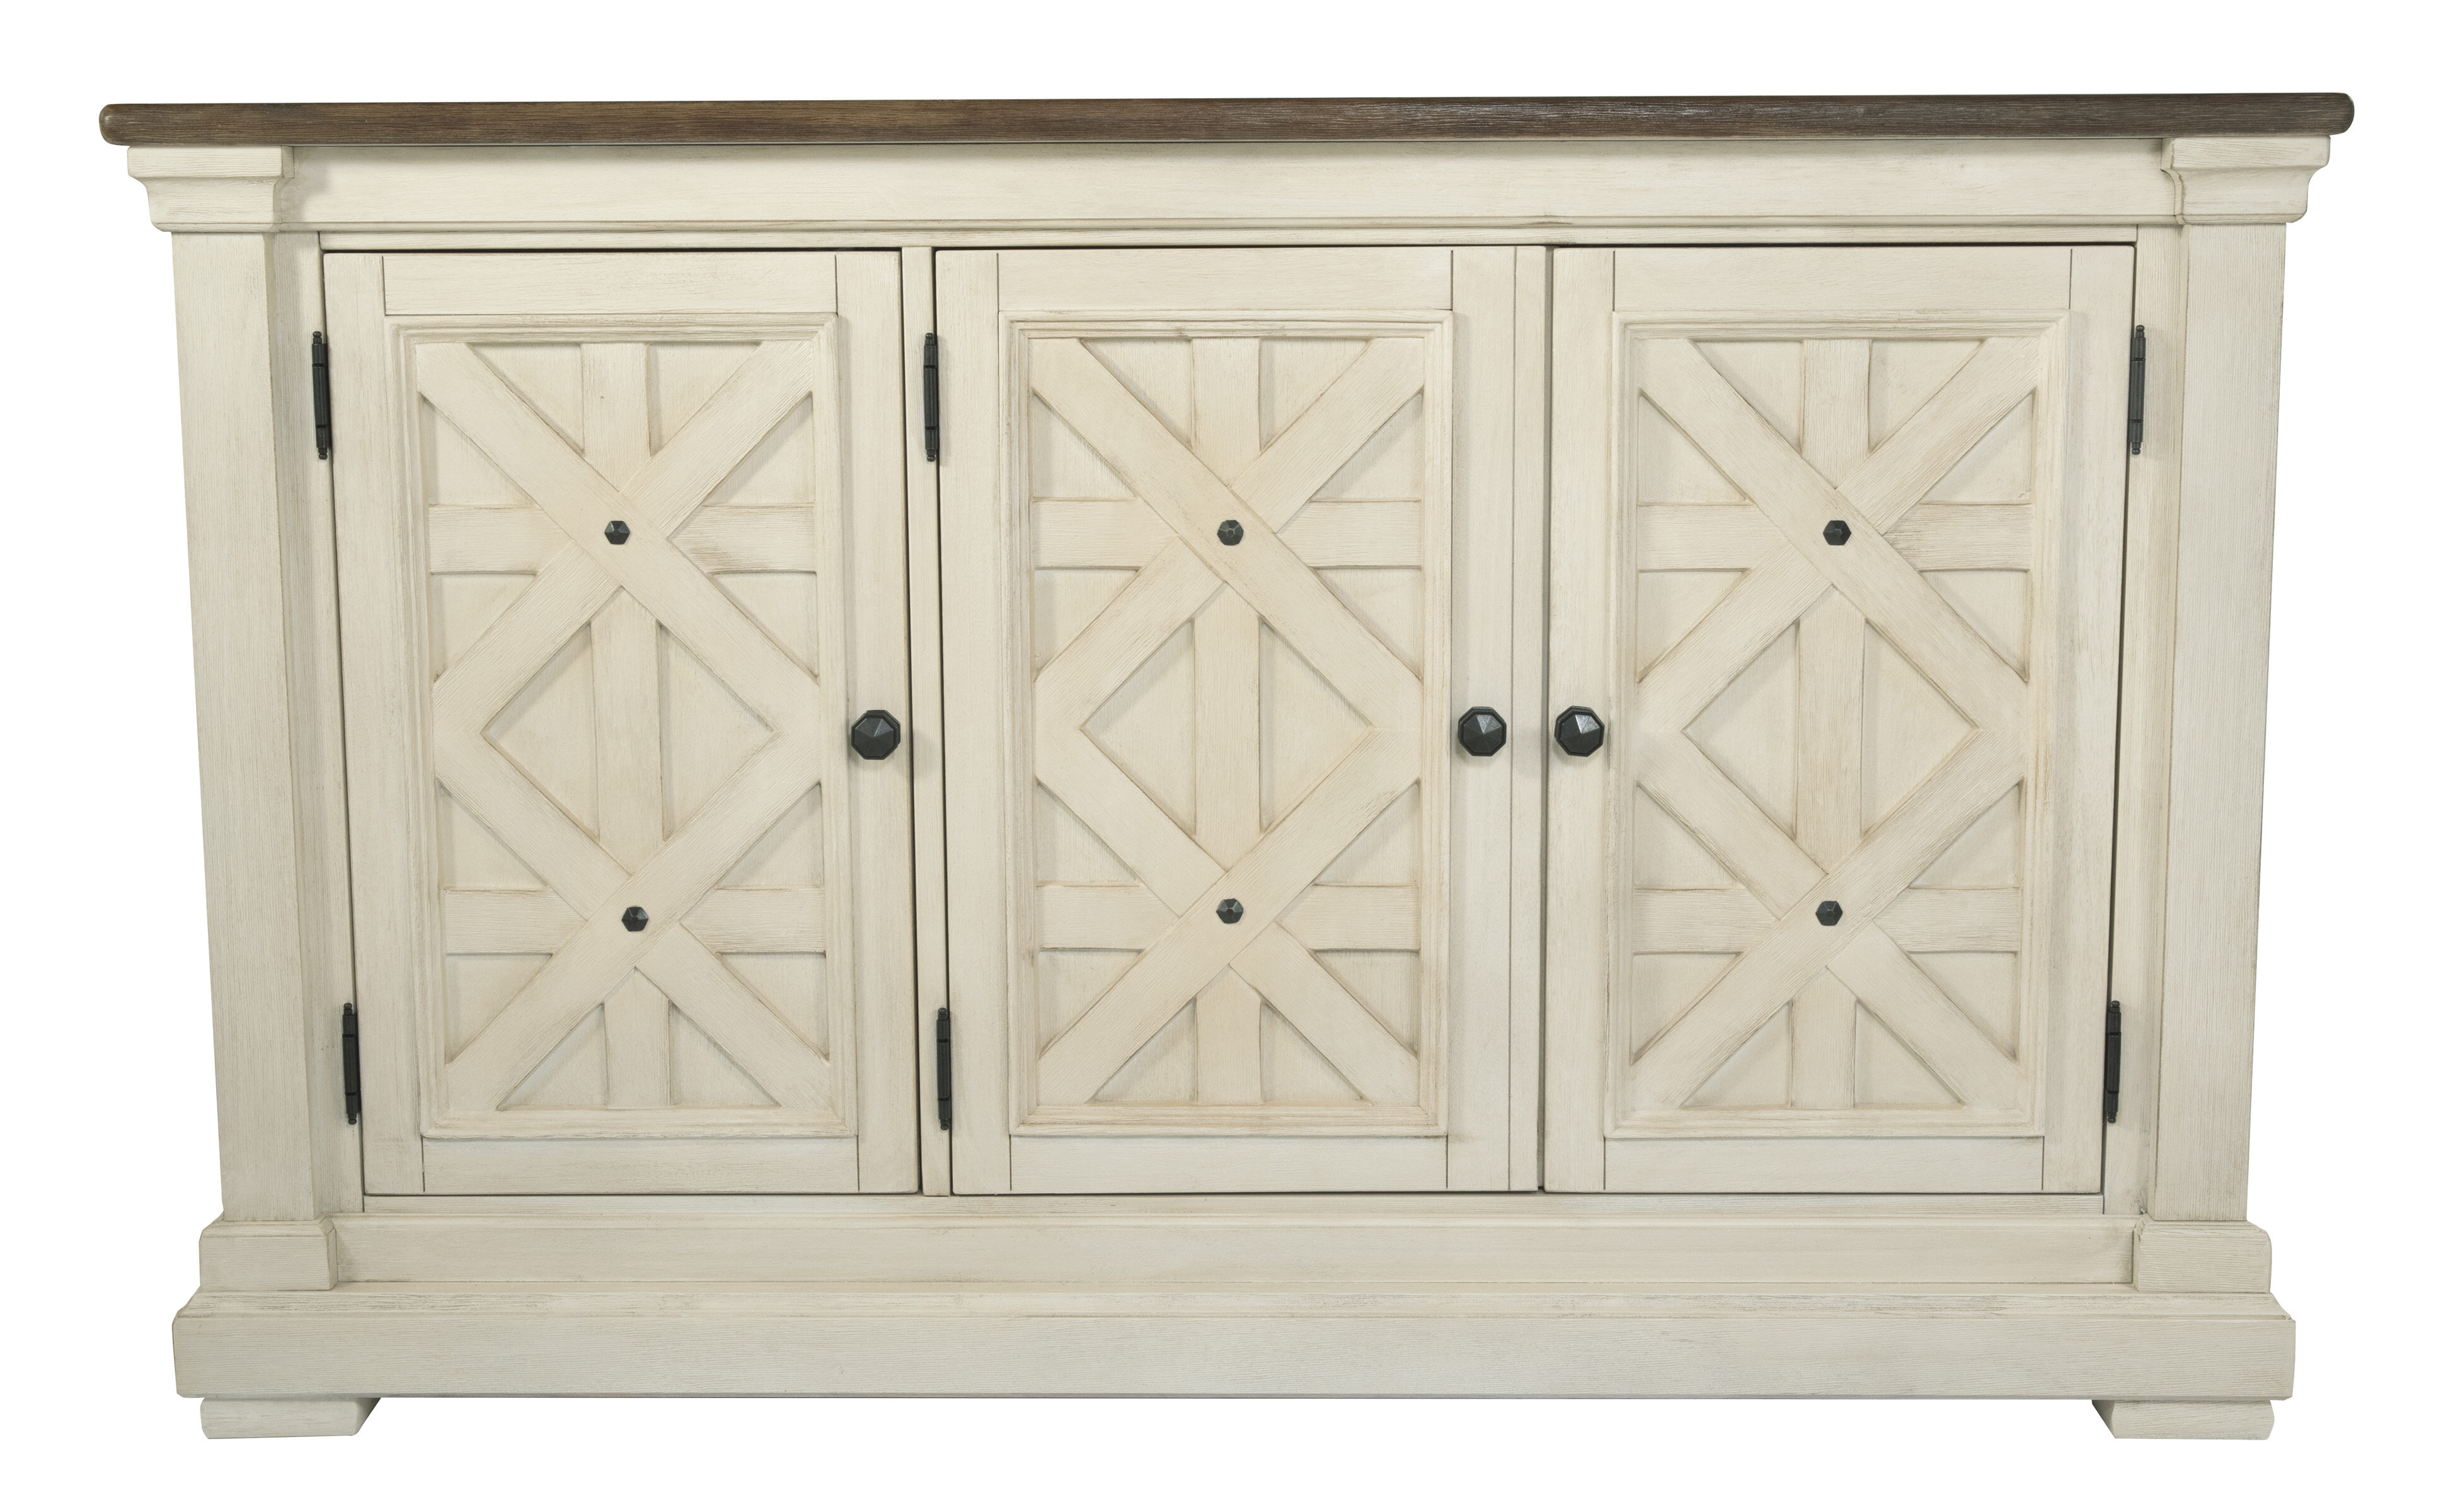 Farmhouse & Rustic White Wood Sideboards & Buffets | Birch Lane in Ilyan Traditional Wood Sideboards (Image 8 of 30)